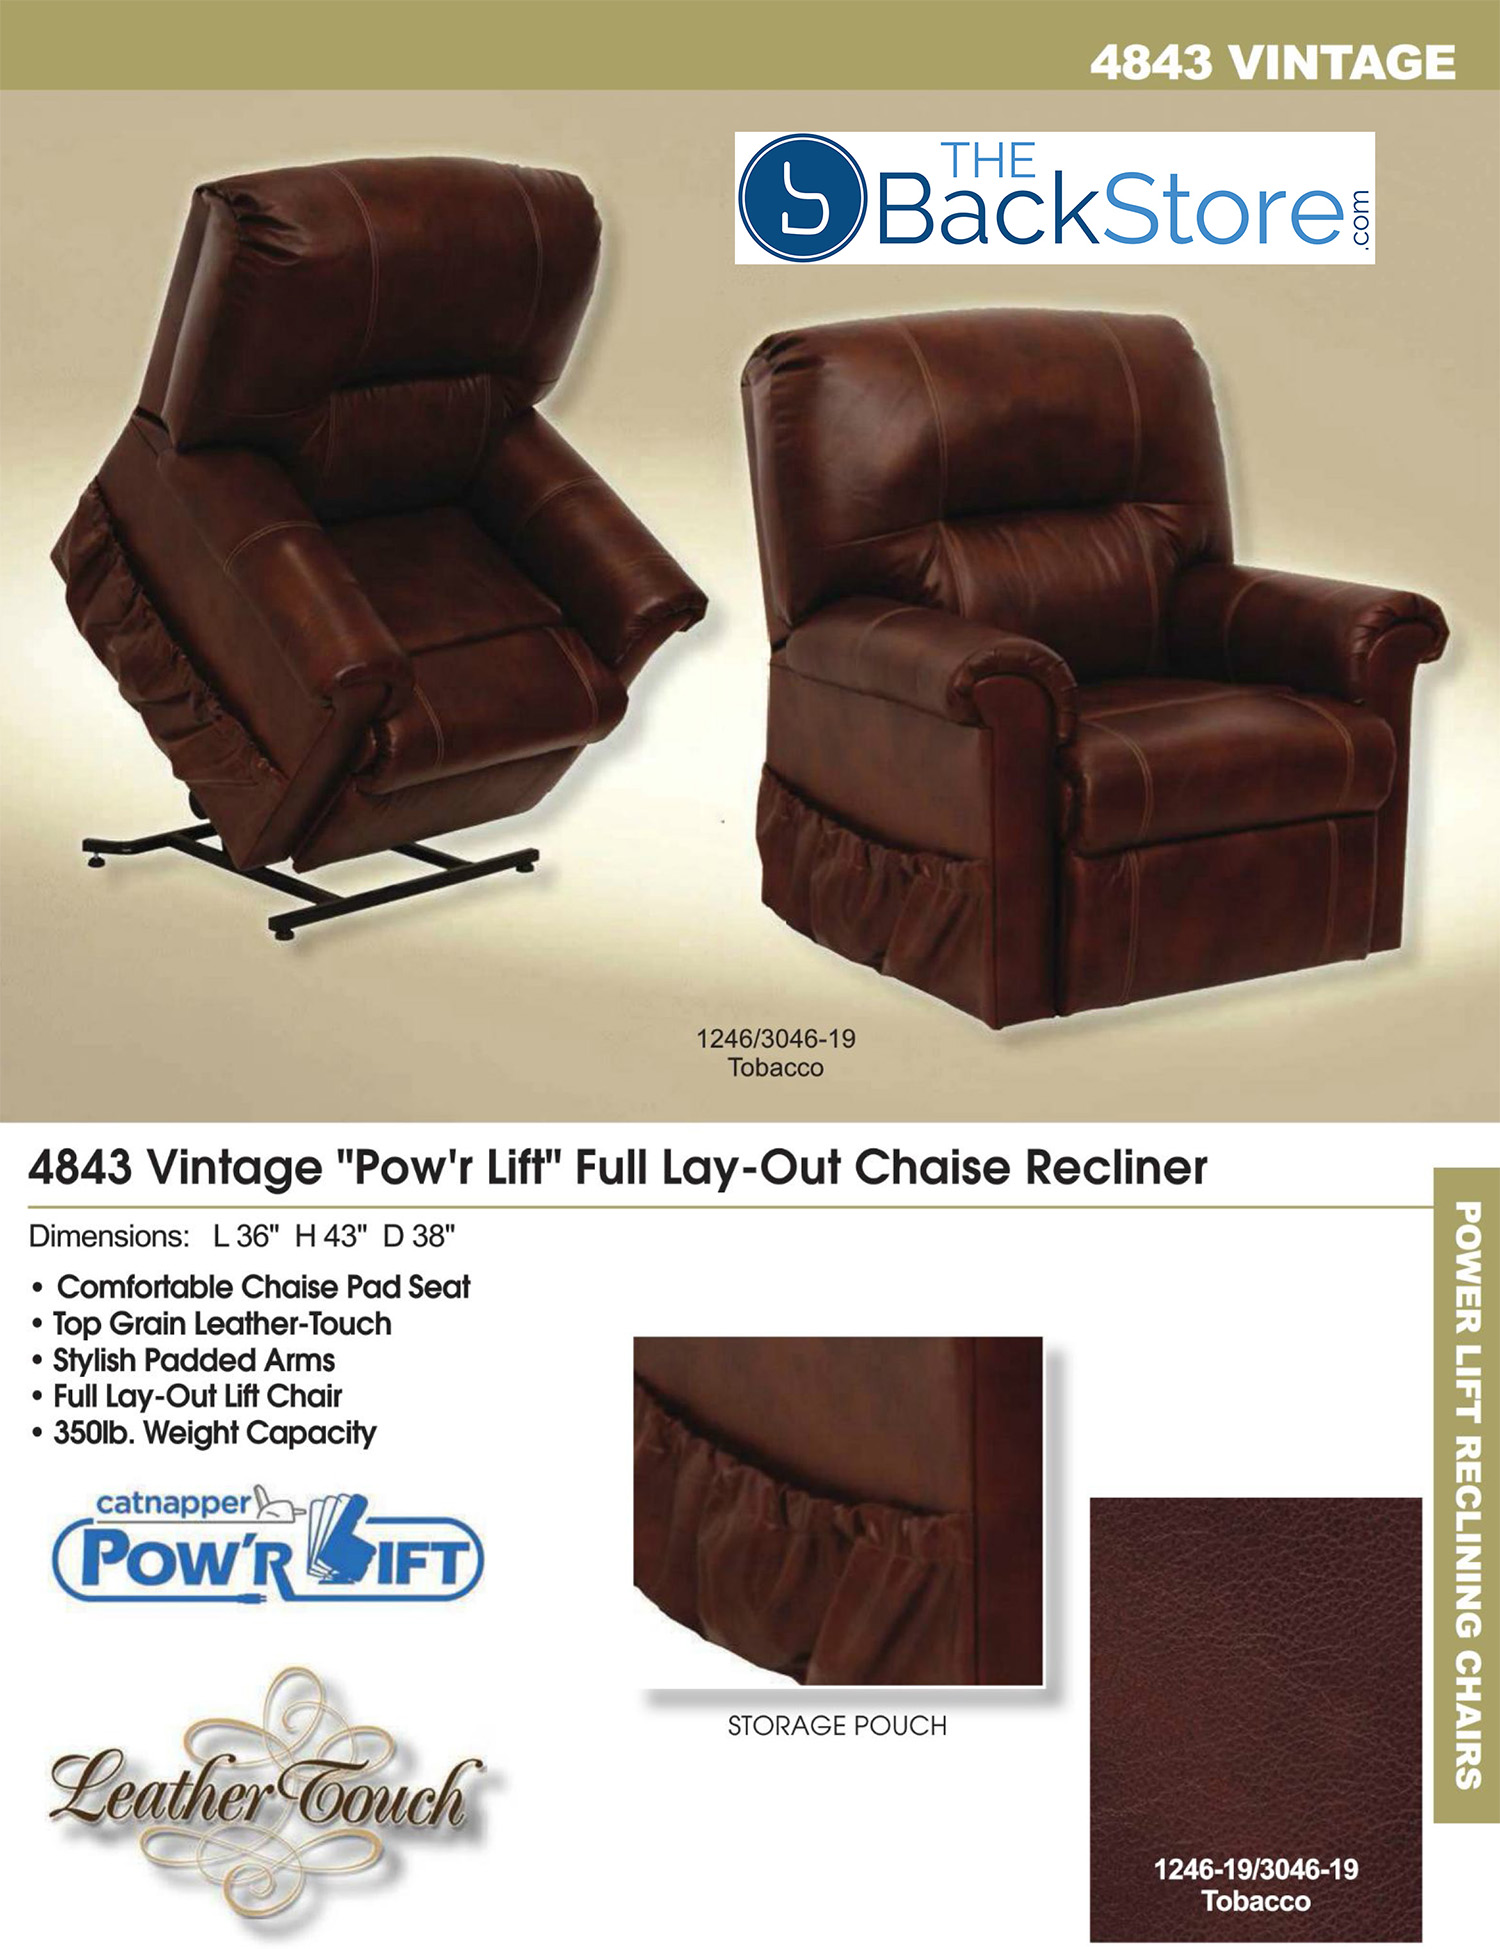 Catnapper Recliners Soother Tan Powerlift Recliner By Catnapper